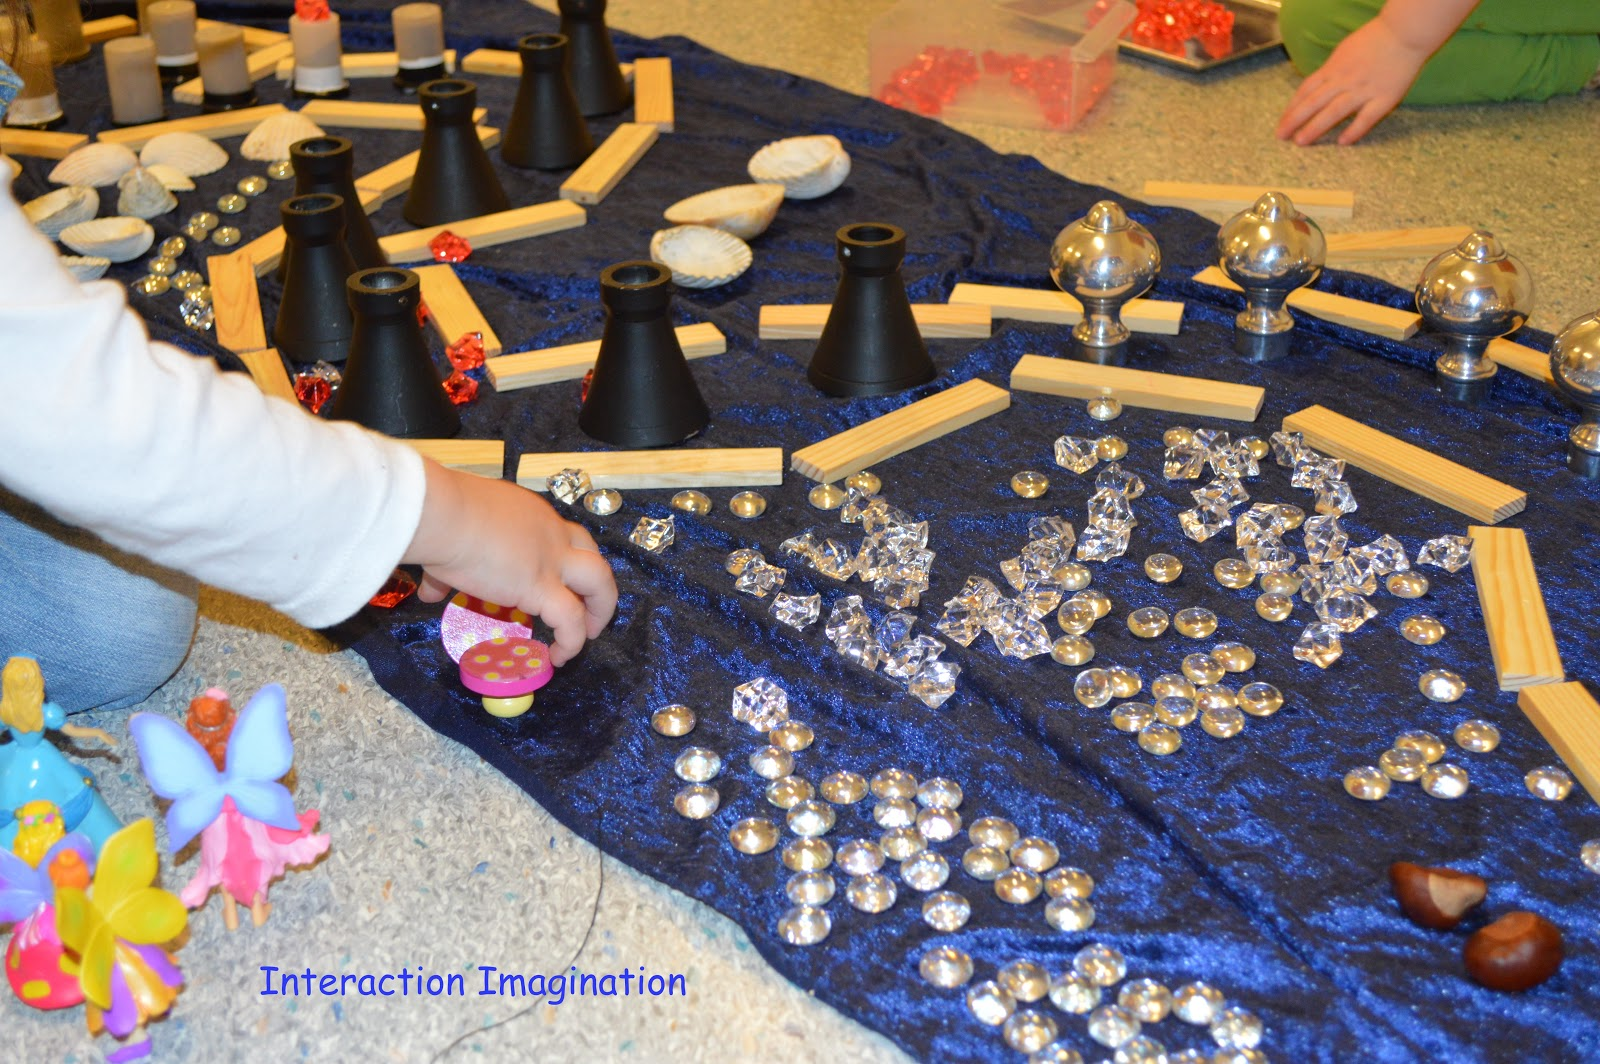 Interaction Imagination: creating another world - photo#49